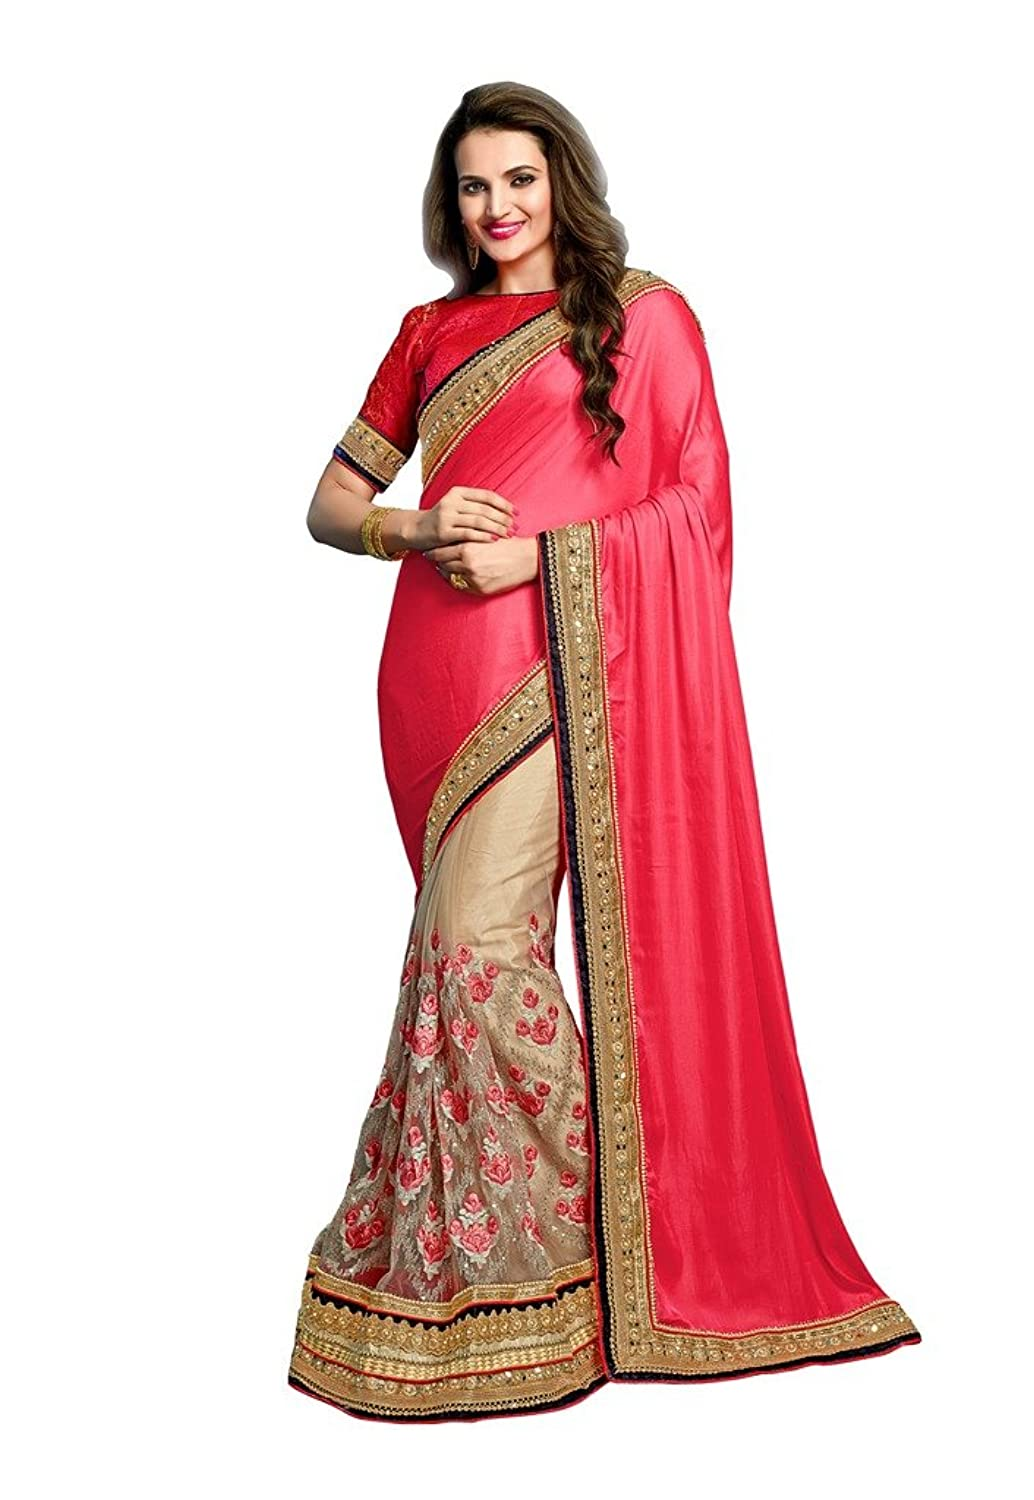 EthnicWear Embroidered Chiffon Net Pink Latest Collection Sarees Saris